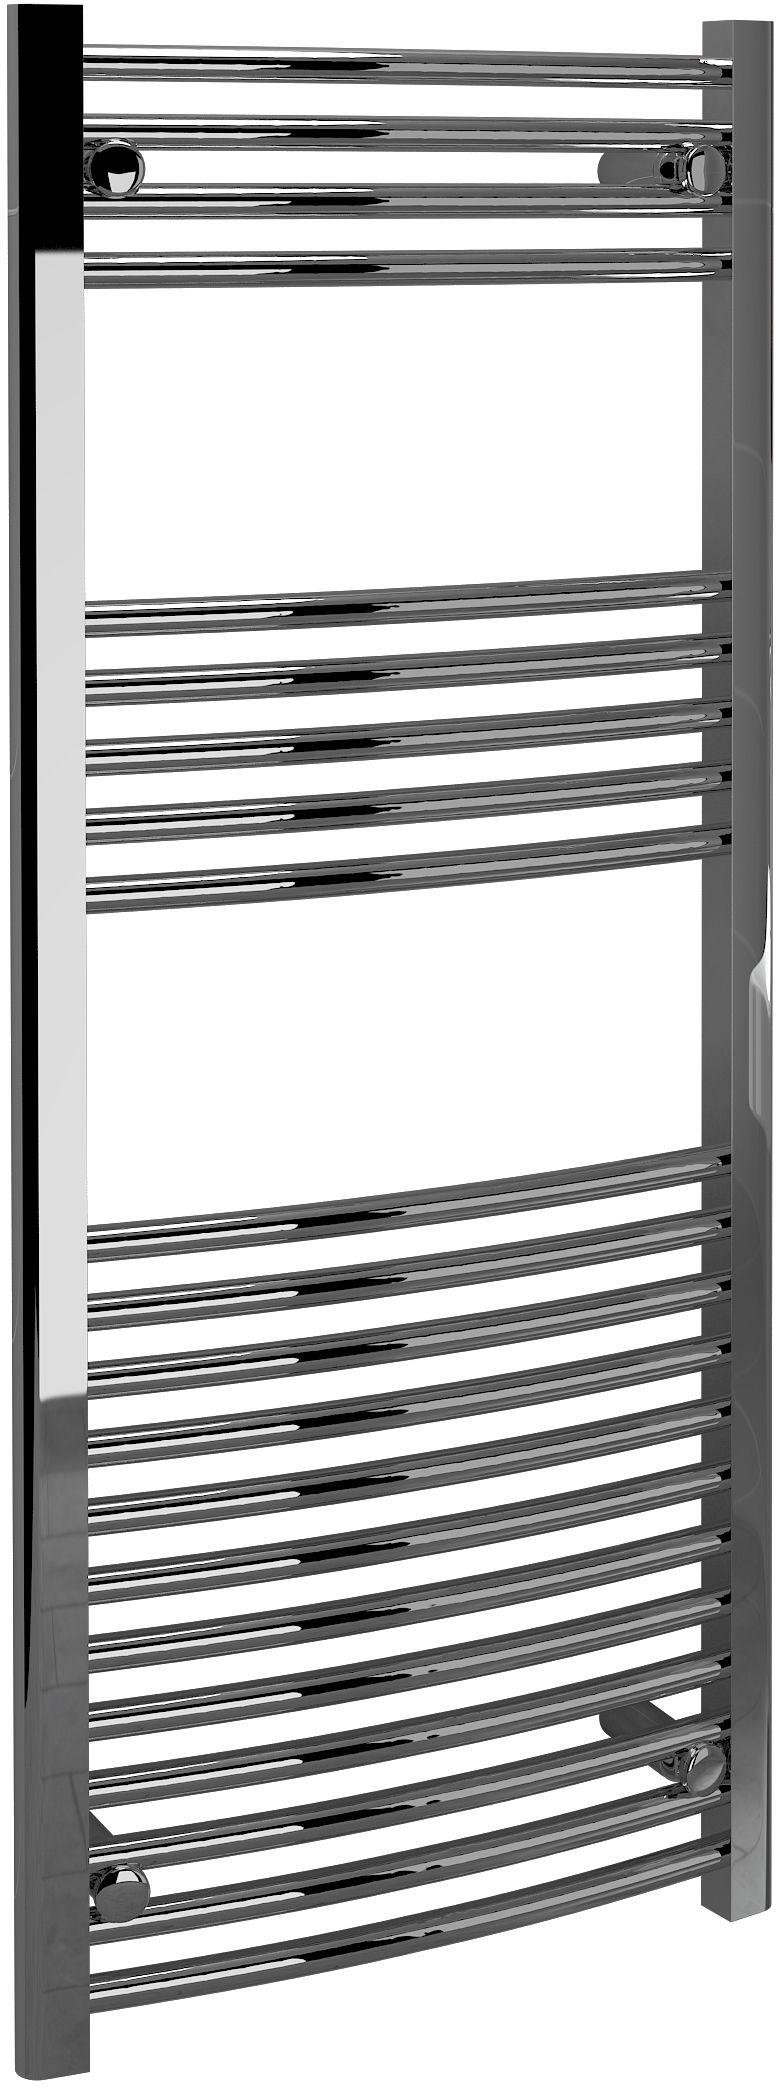 curved-towel-radiator-120-x-50cm-chrome